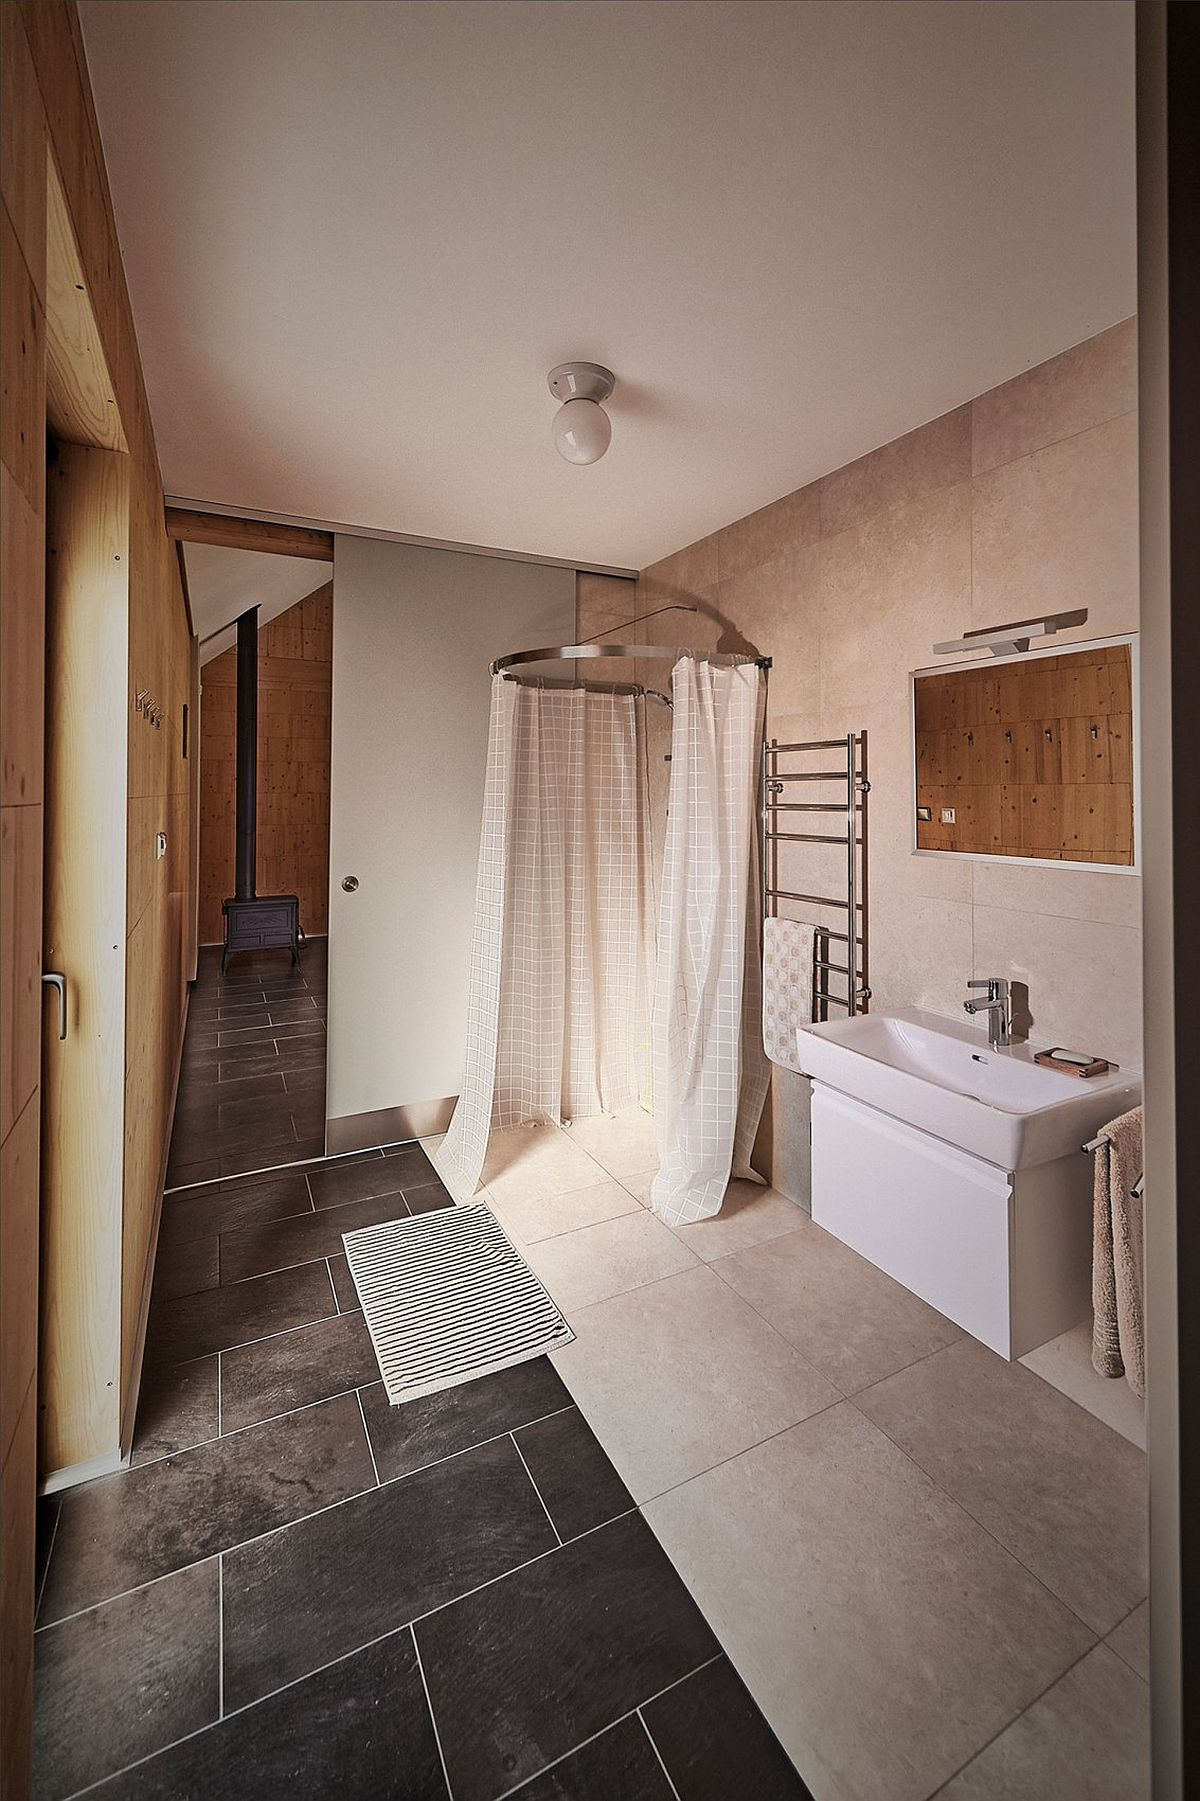 Bathroom and corner shower zone